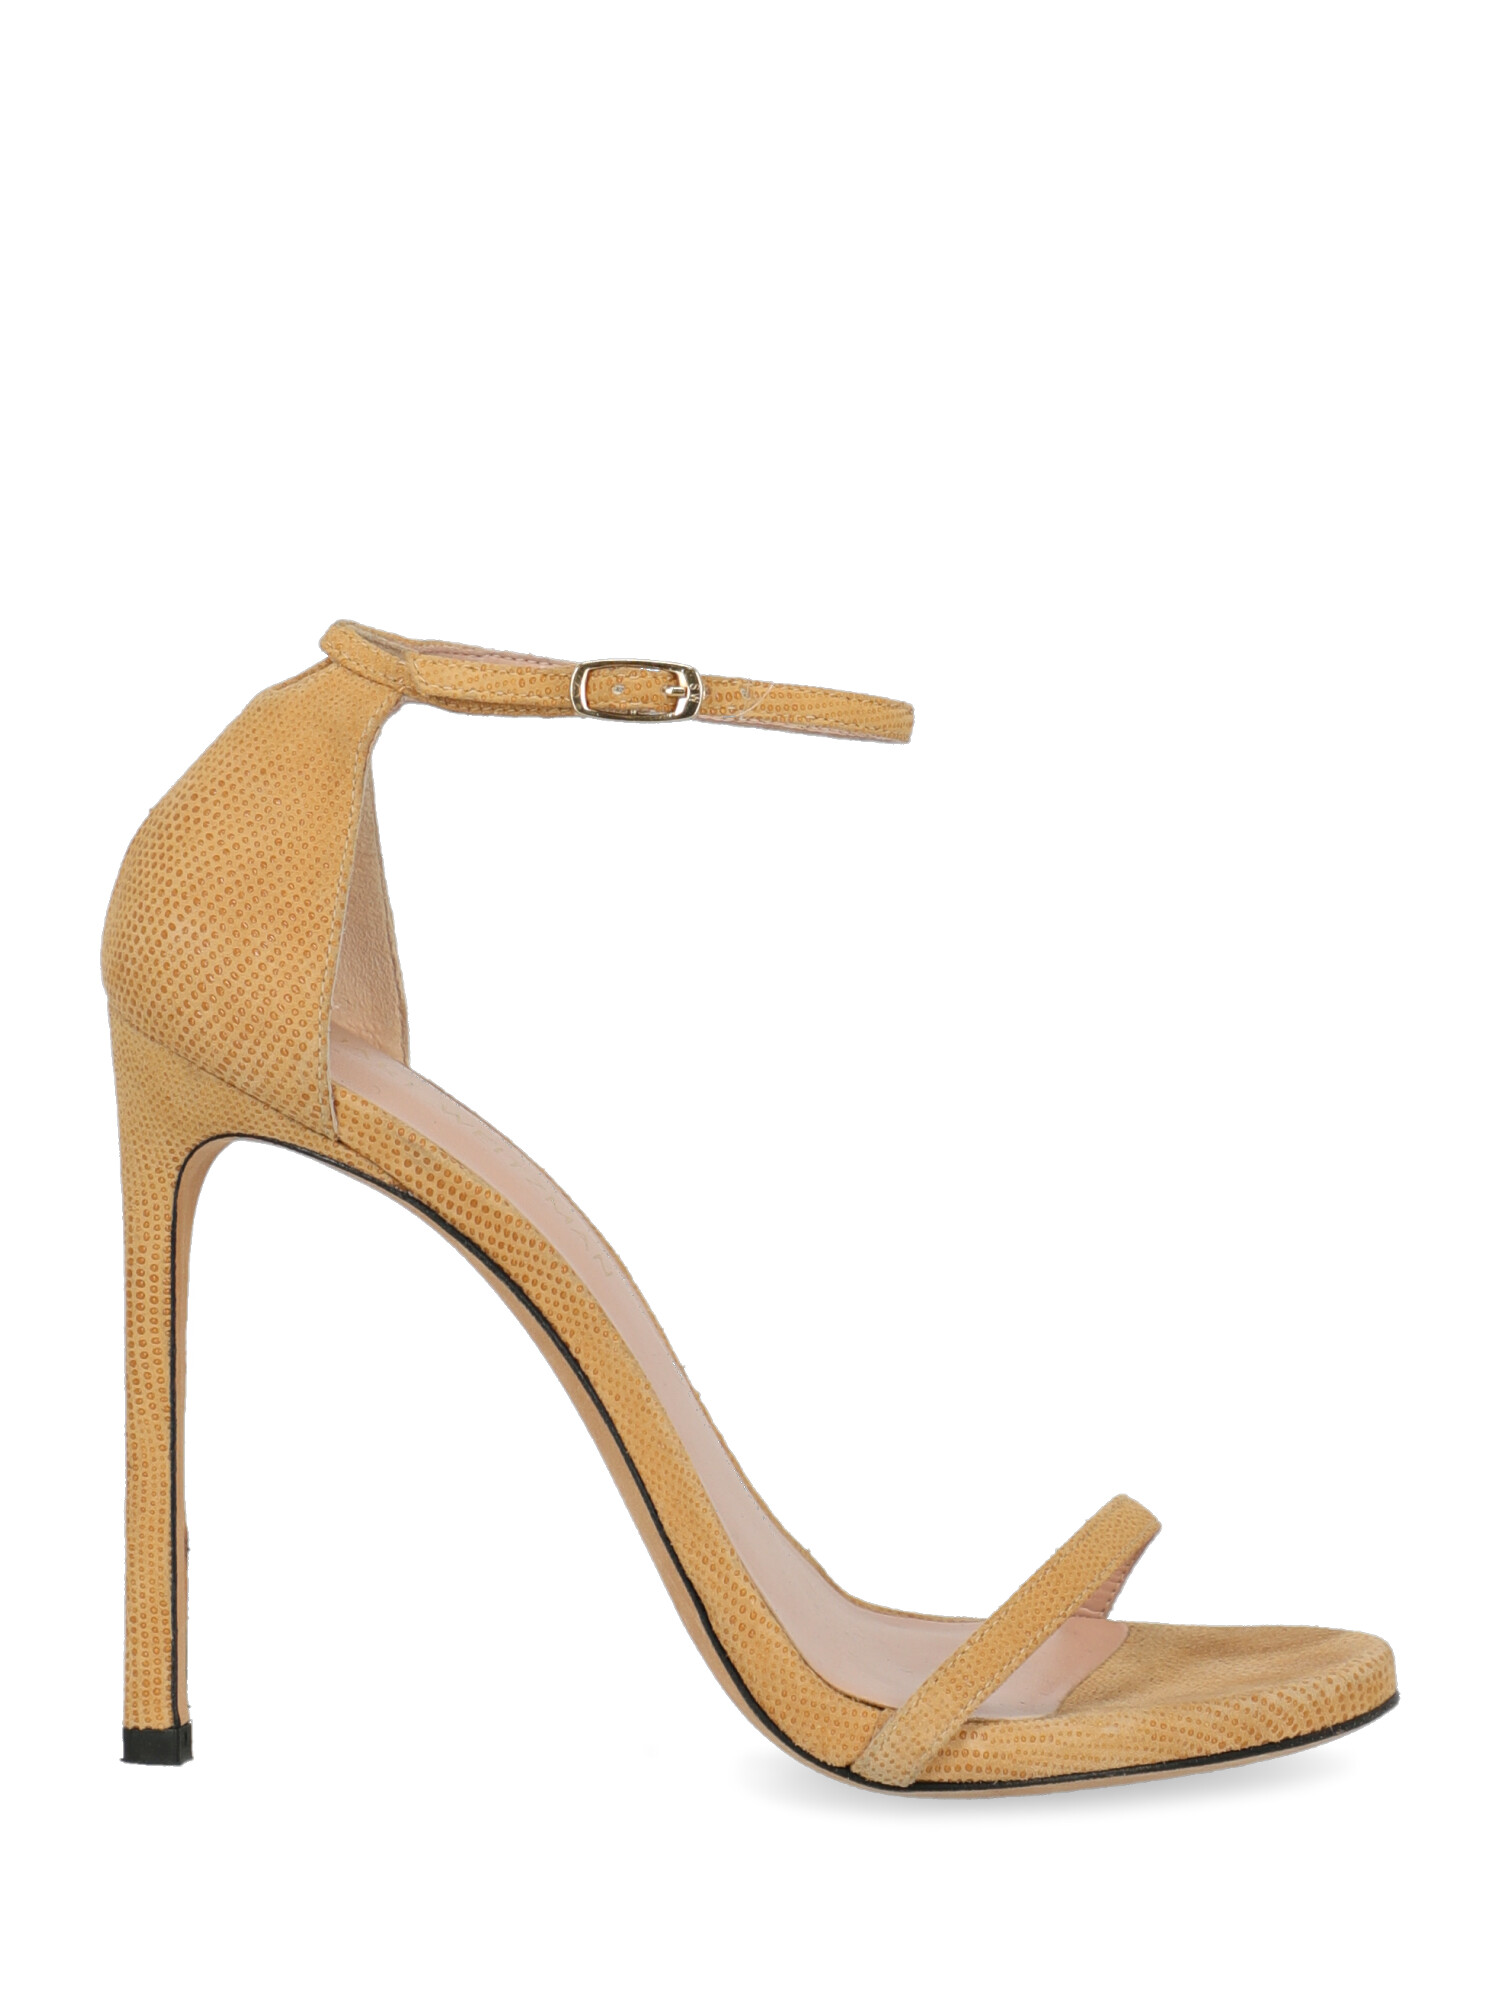 Pre-owned Stuart Weitzman Shoe In Beige